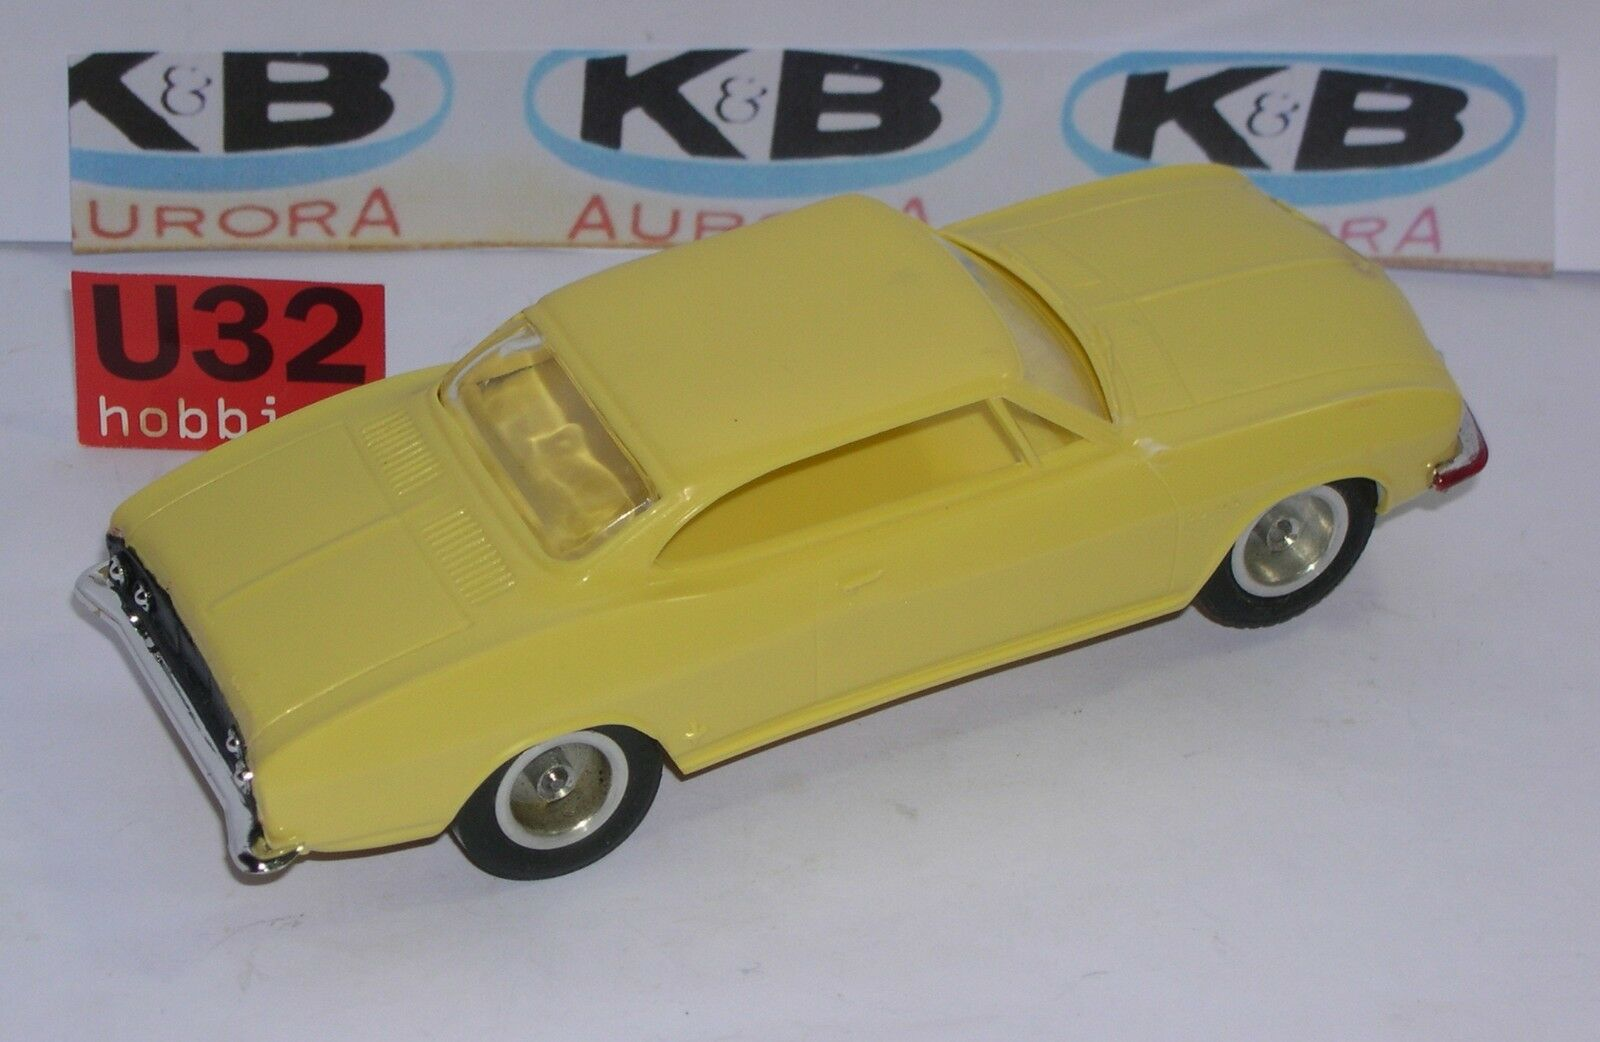 FN K & B AURORA 3254 CORVAIR CORVAIR CORVAIR CORSA 1 32 EXCELLENT CONDITION UNBOXED 7ca2b3